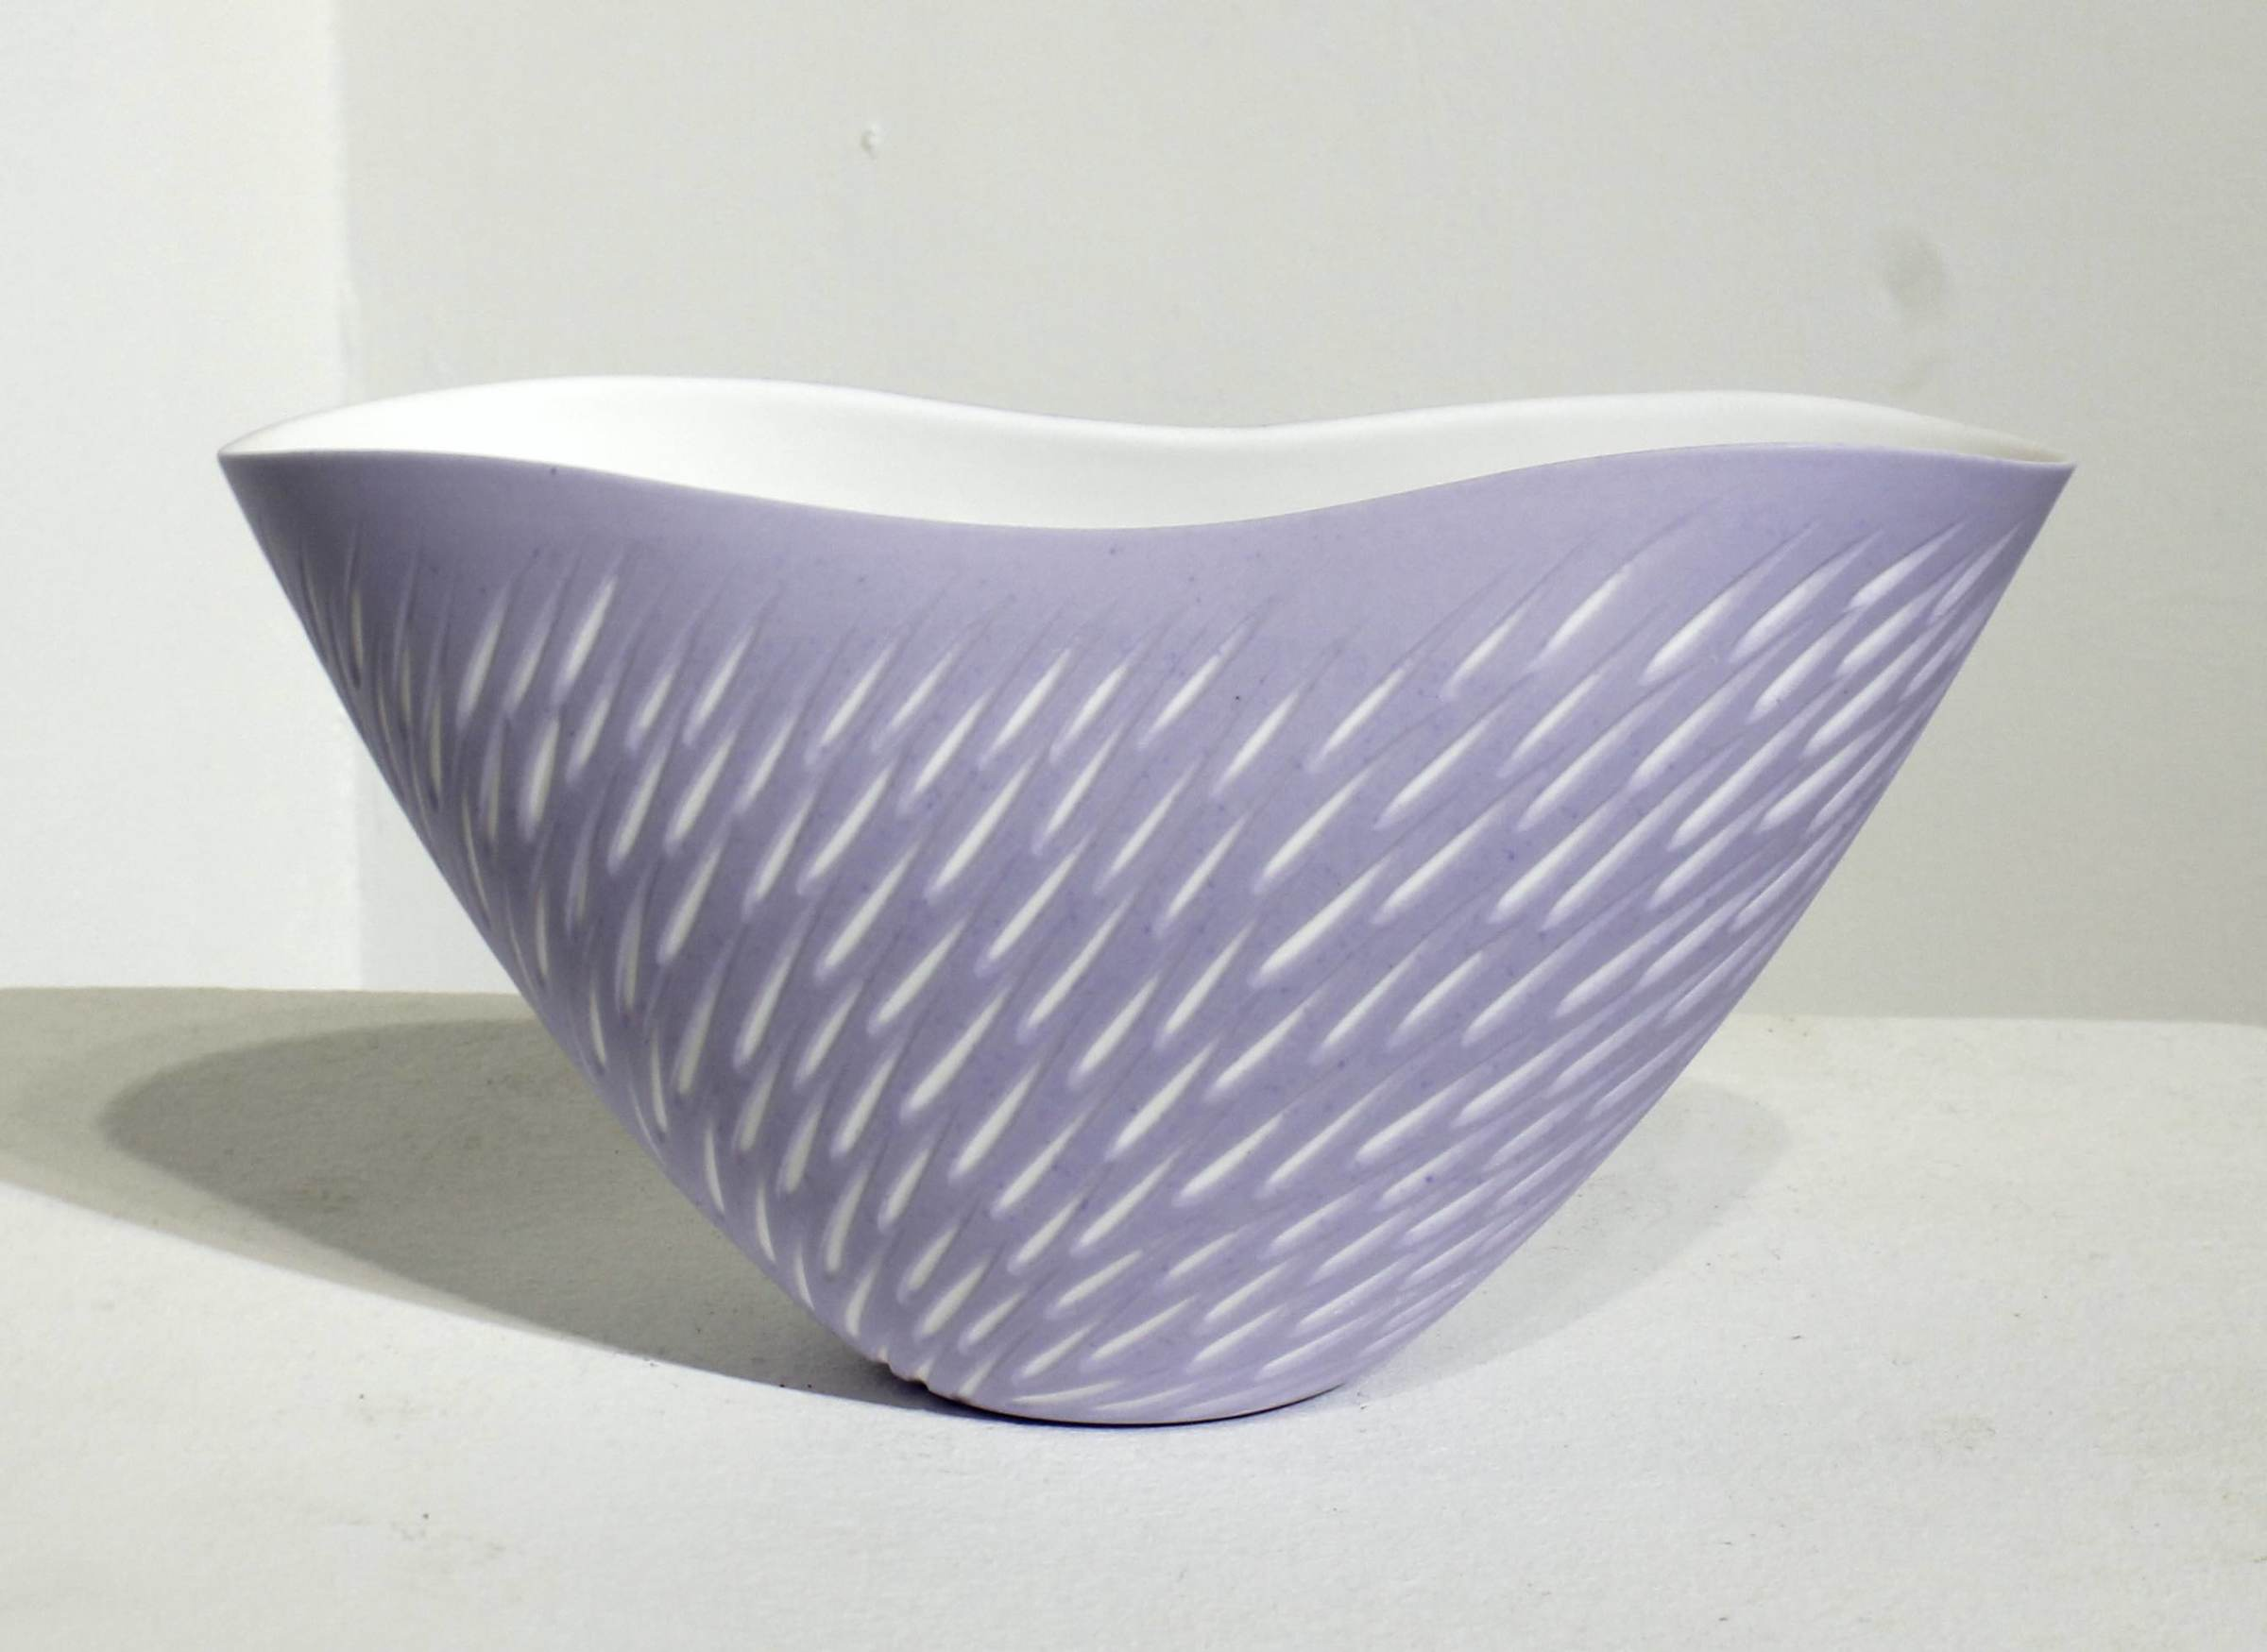 "<span class=""link fancybox-details-link""><a href=""/artists/60-sasha-wardell/works/5118-sasha-wardell-lavender-shoal-vase-2017/"">View Detail Page</a></span><div class=""artist""><strong>Sasha Wardell</strong></div> <div class=""title""><em>Lavender Shoal Vase </em>, 2017</div> <div class=""signed_and_dated"">inscribed with artist initials on base</div> <div class=""medium"">layered and sliced bone china</div> <div class=""dimensions"">h. 11 x w. 19 x d. 8.5 cm</div>"